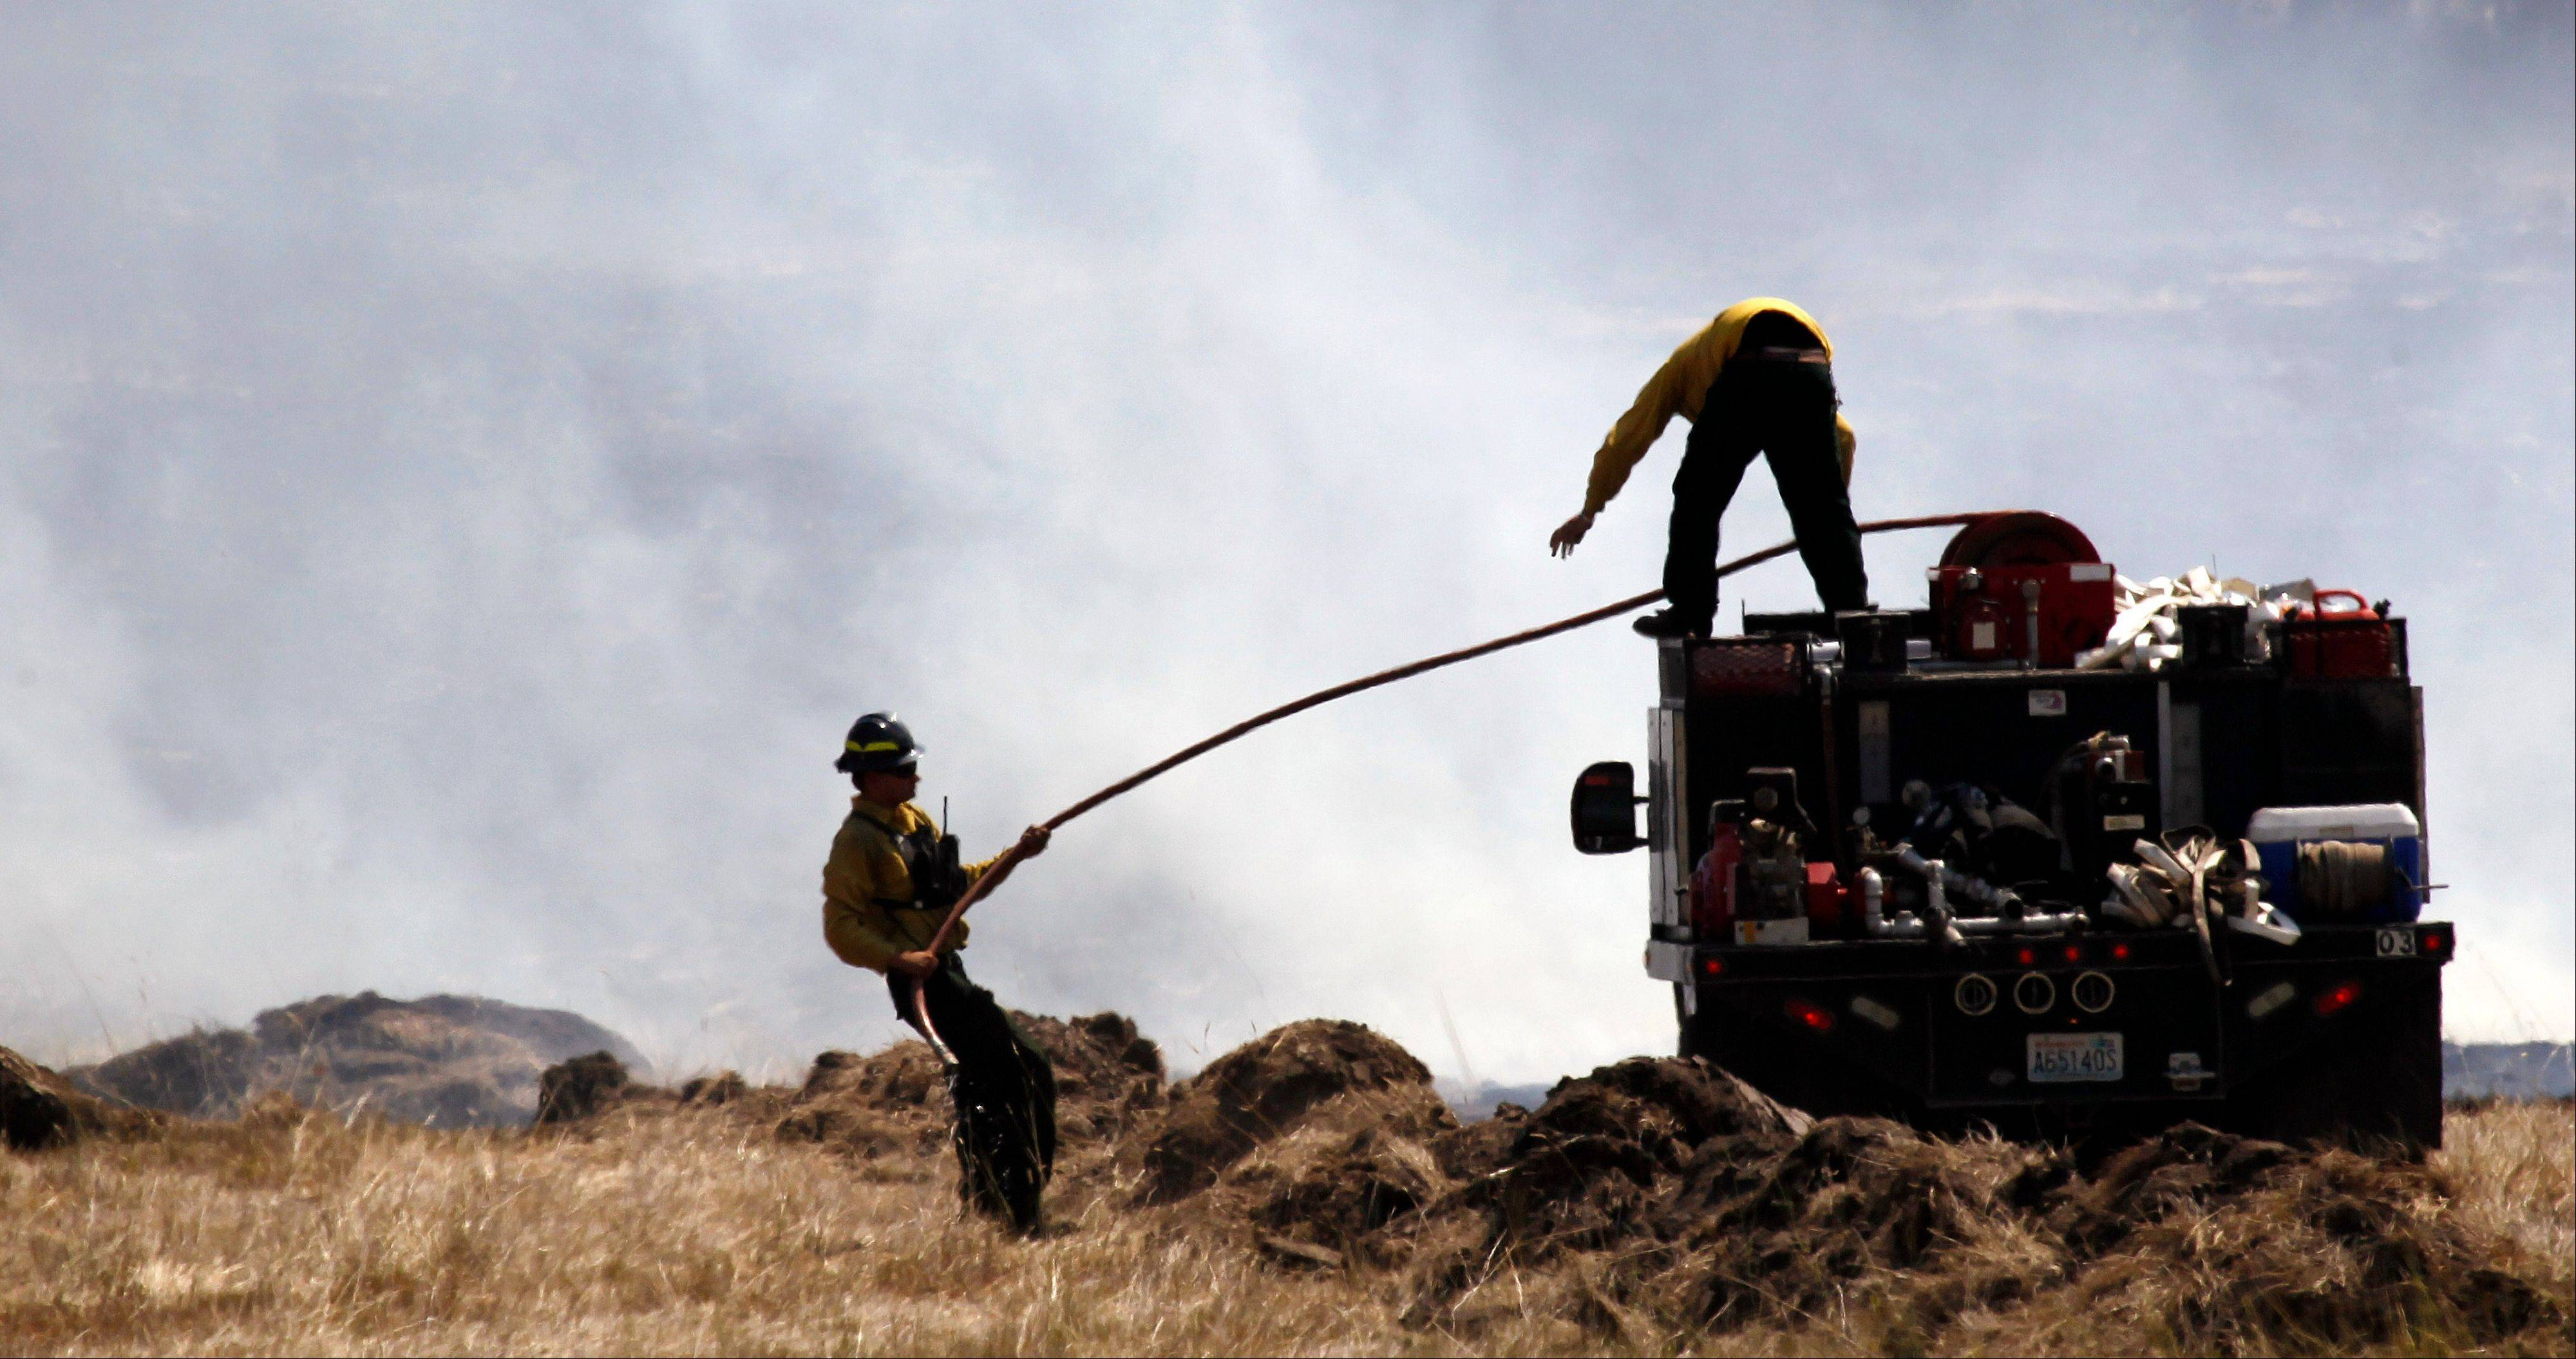 Firefighters pull a hose into position to quench a smoldering field Wednesday near Cle Elum, Wash.